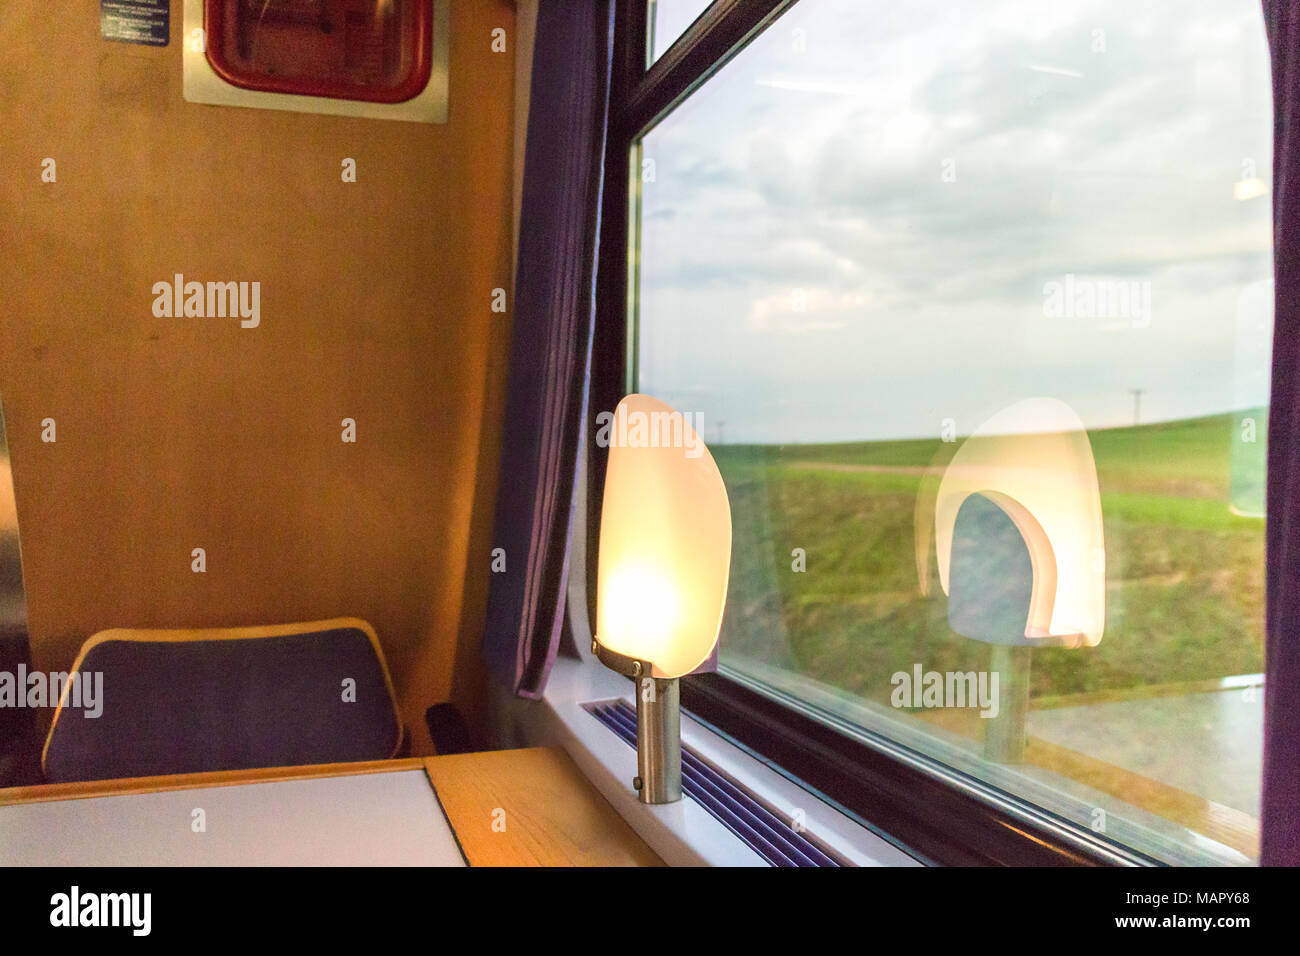 dining car interior stock photos dining car interior stock images alamy. Black Bedroom Furniture Sets. Home Design Ideas